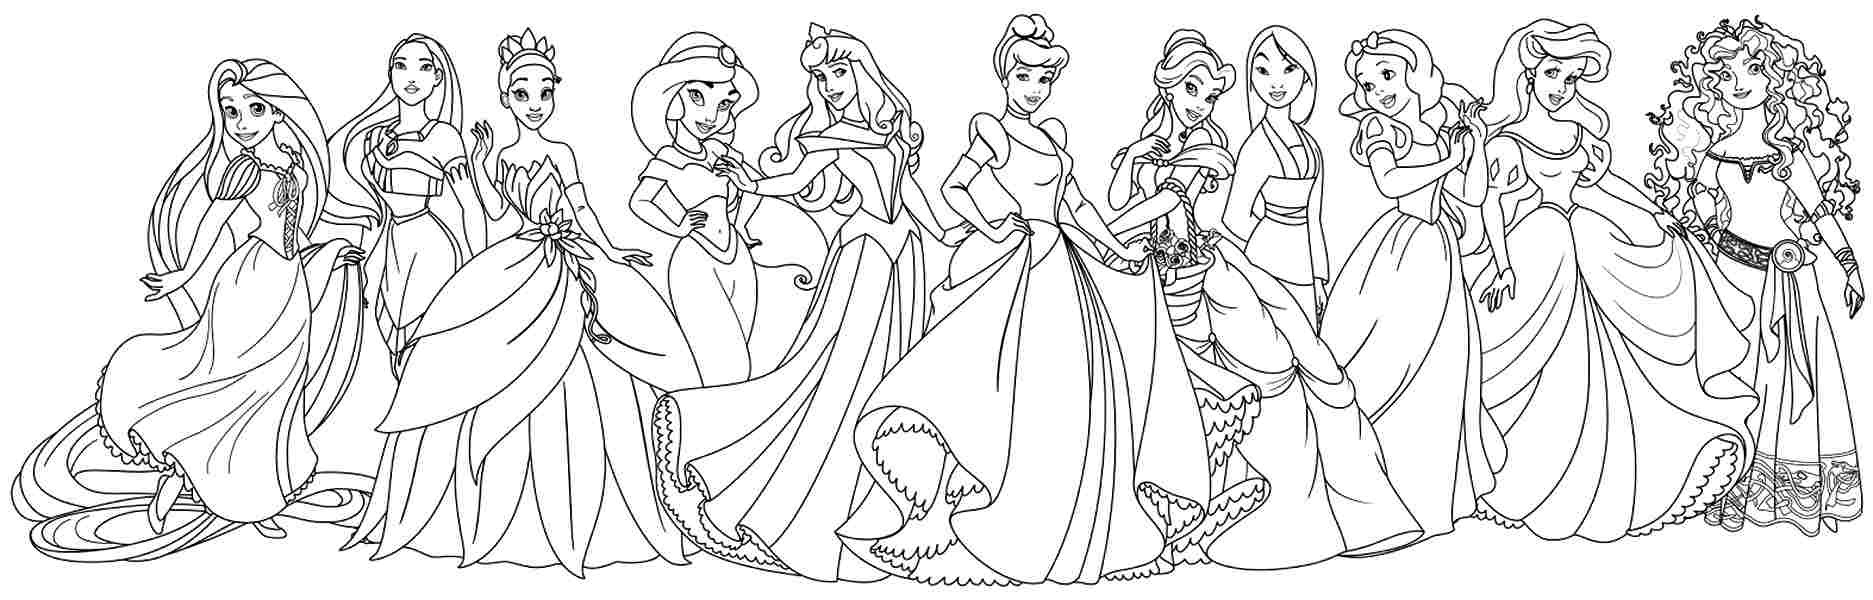 disney printable coloring pages - coloring pages every disney princess all disney princess coloring pages freewebs coloring